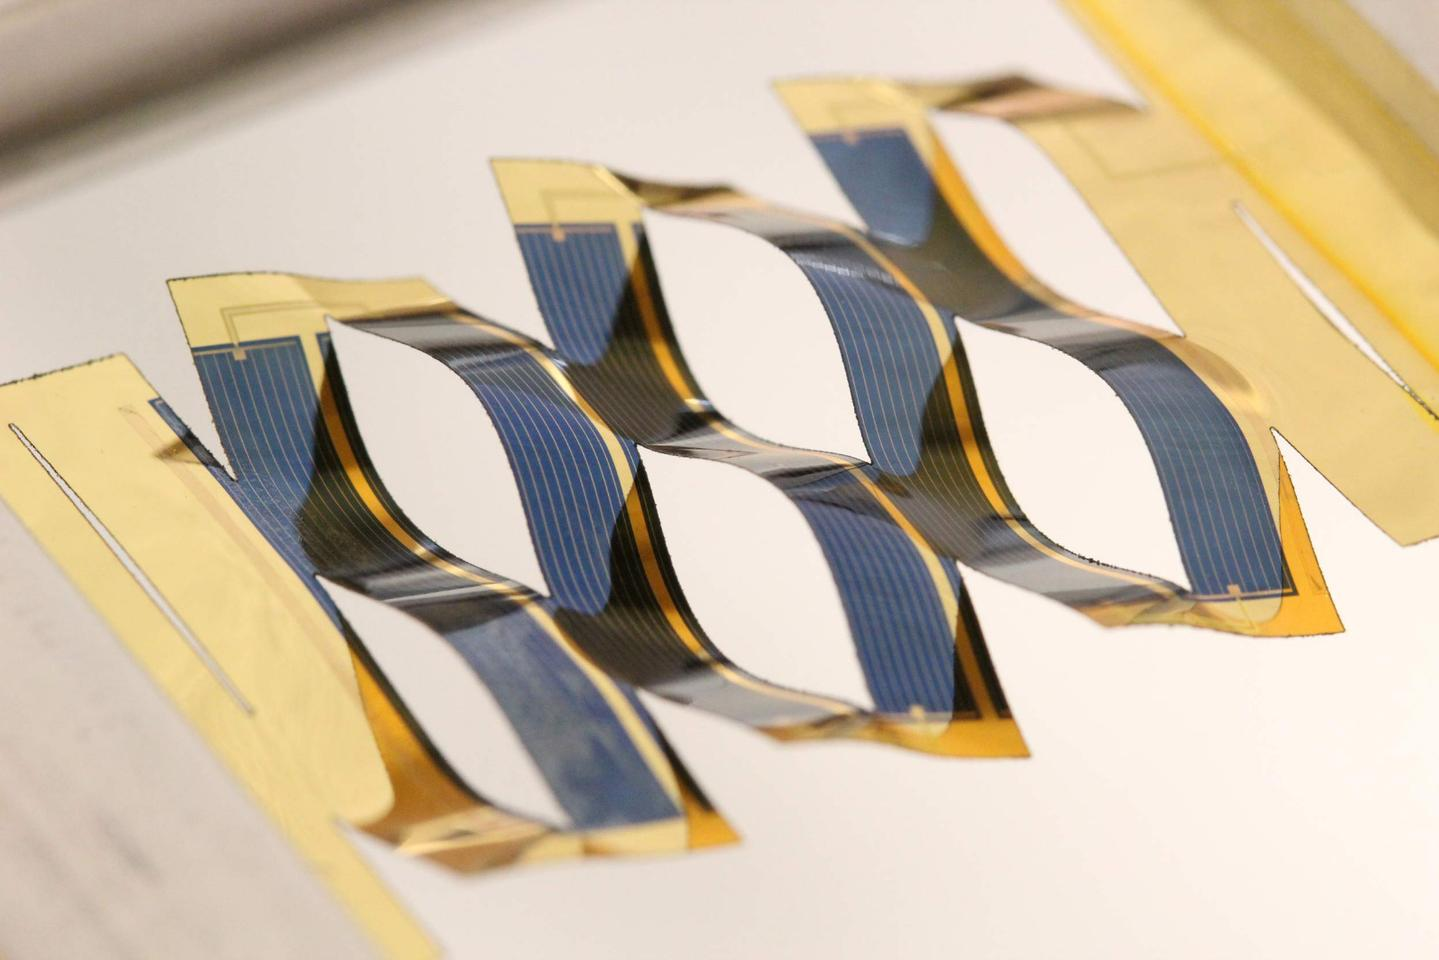 The University of Michigan's twisting solar cells